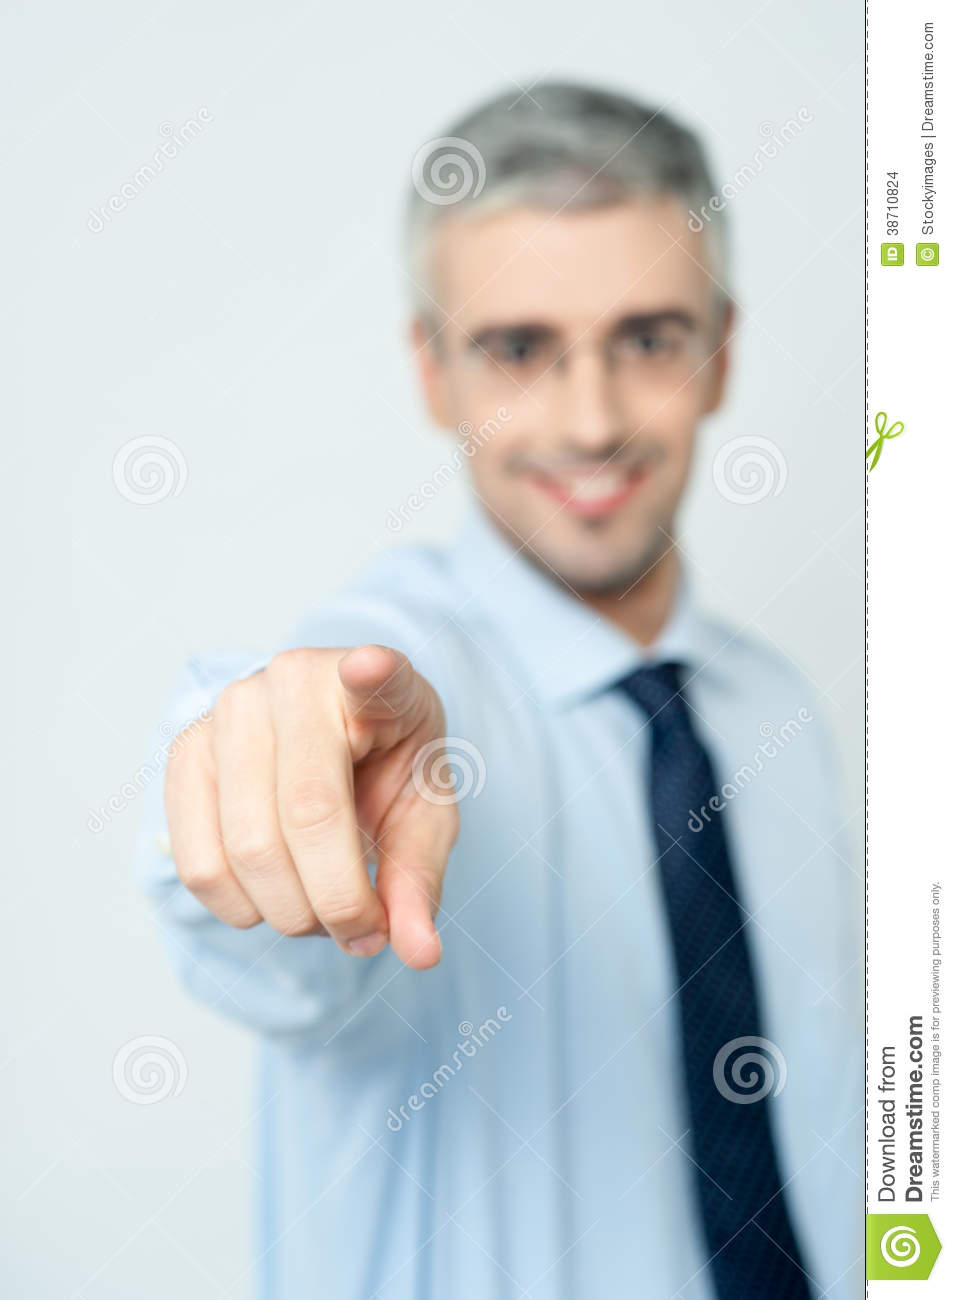 Man pointing a finger towards you